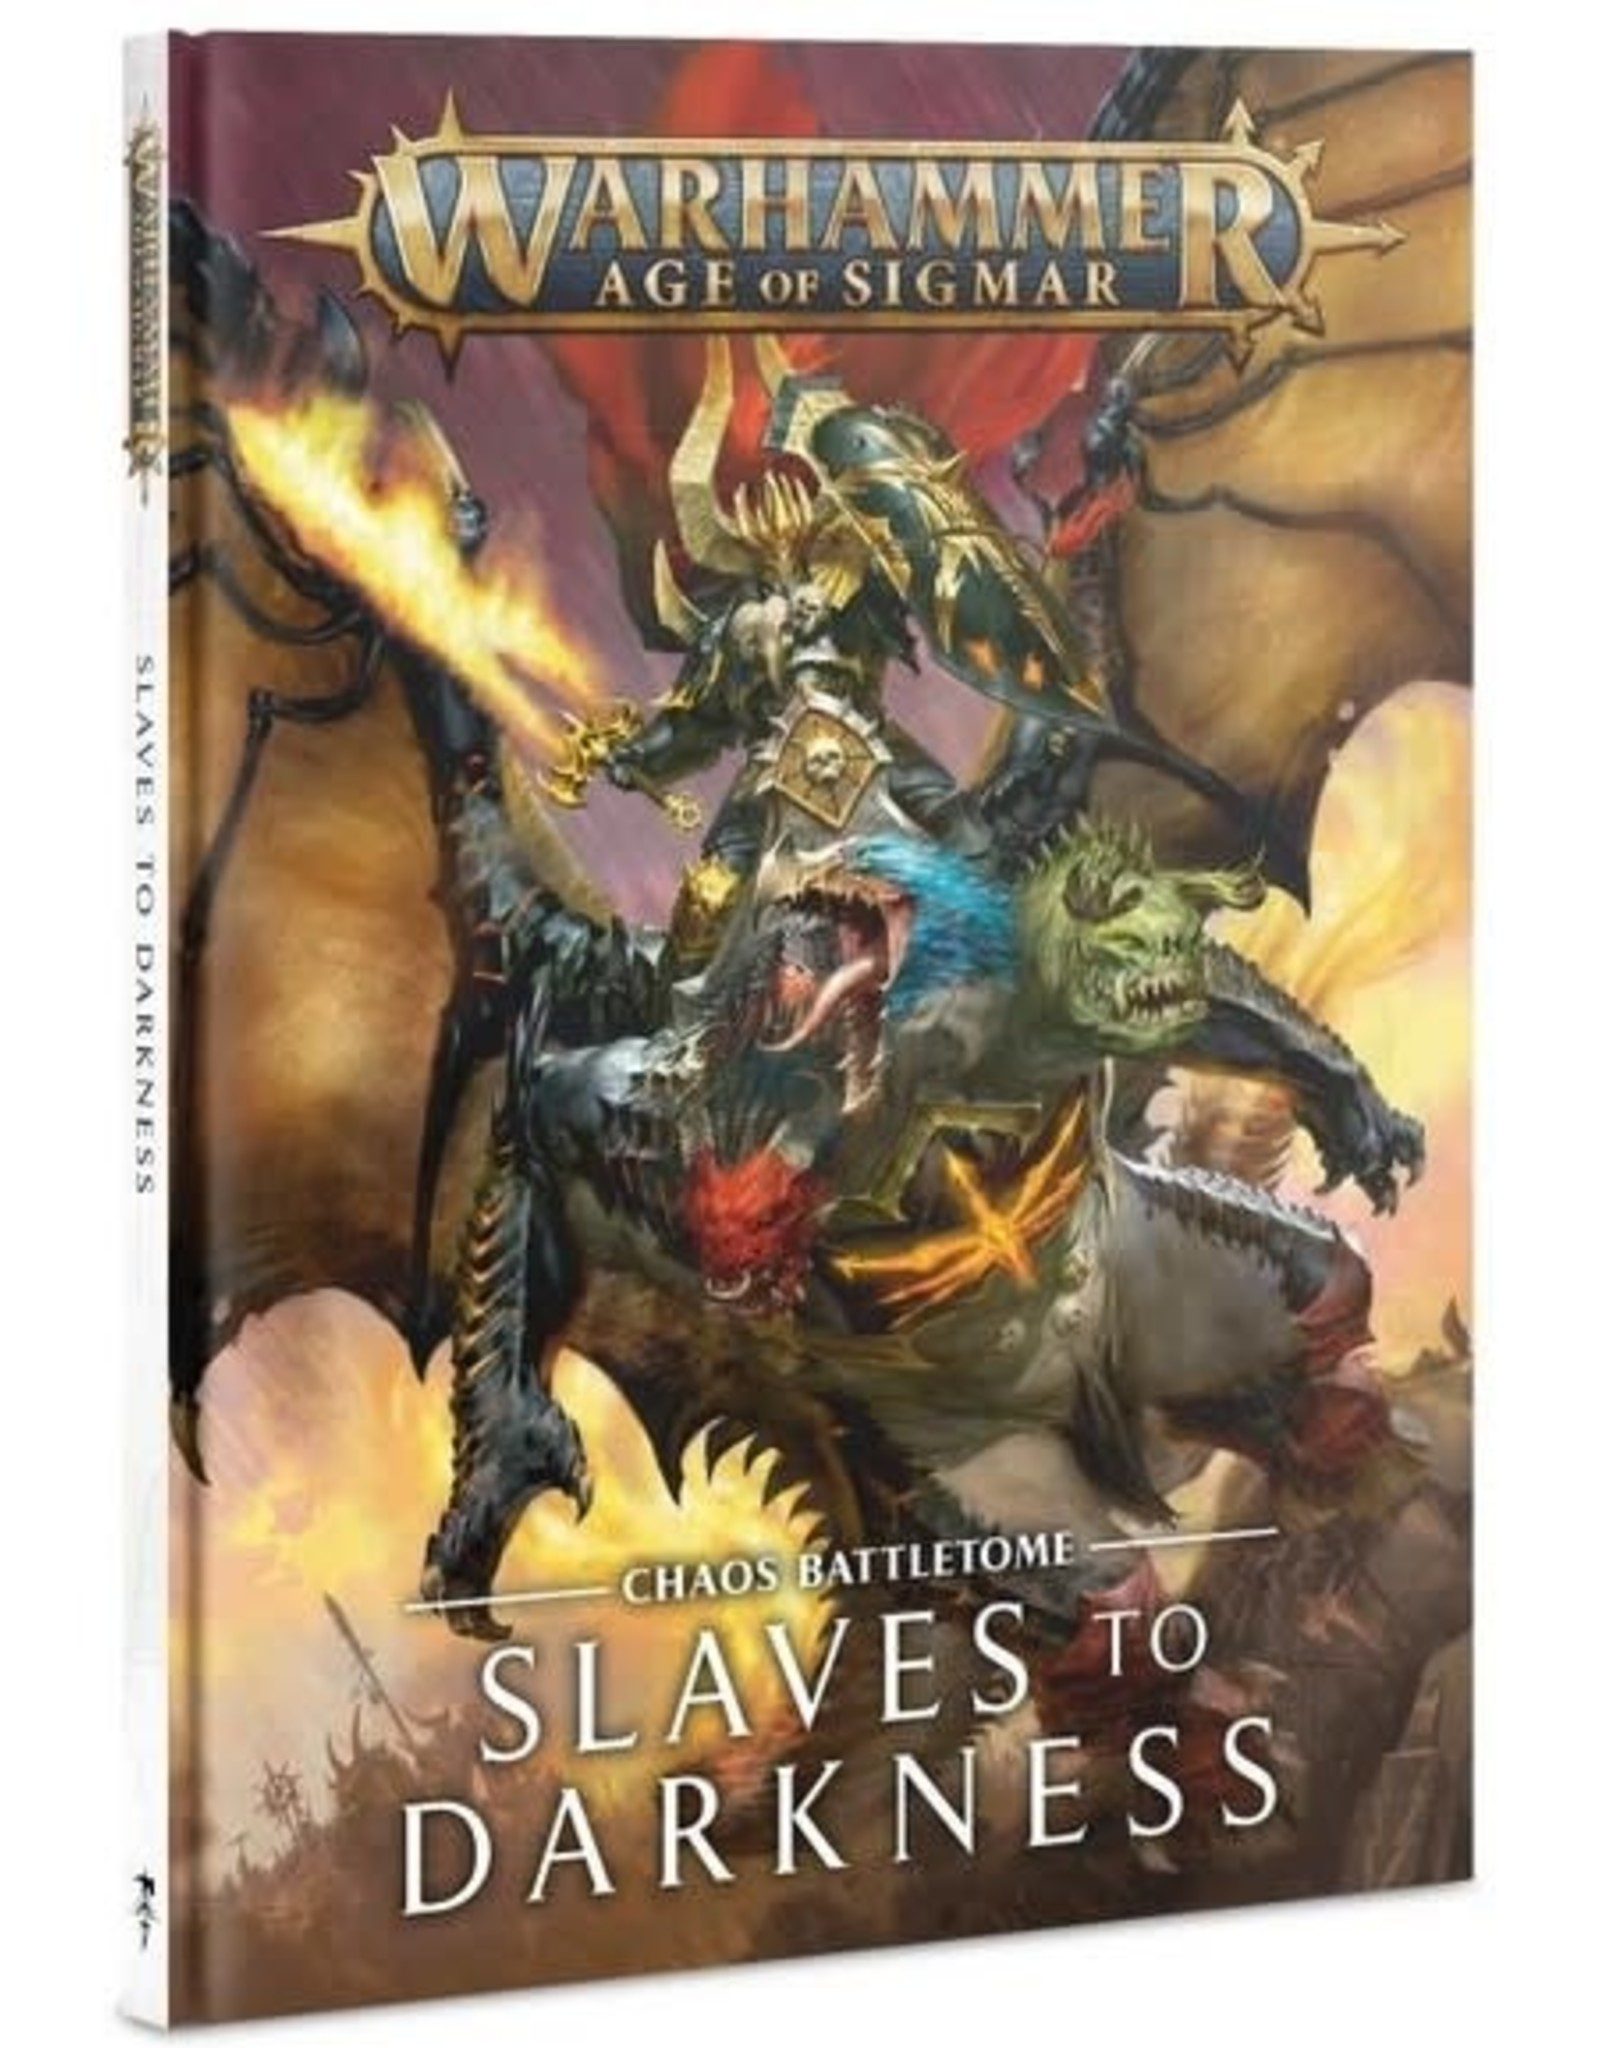 Warhammer AoS WHAoS Chaos Battletome - Slaves to Darkness